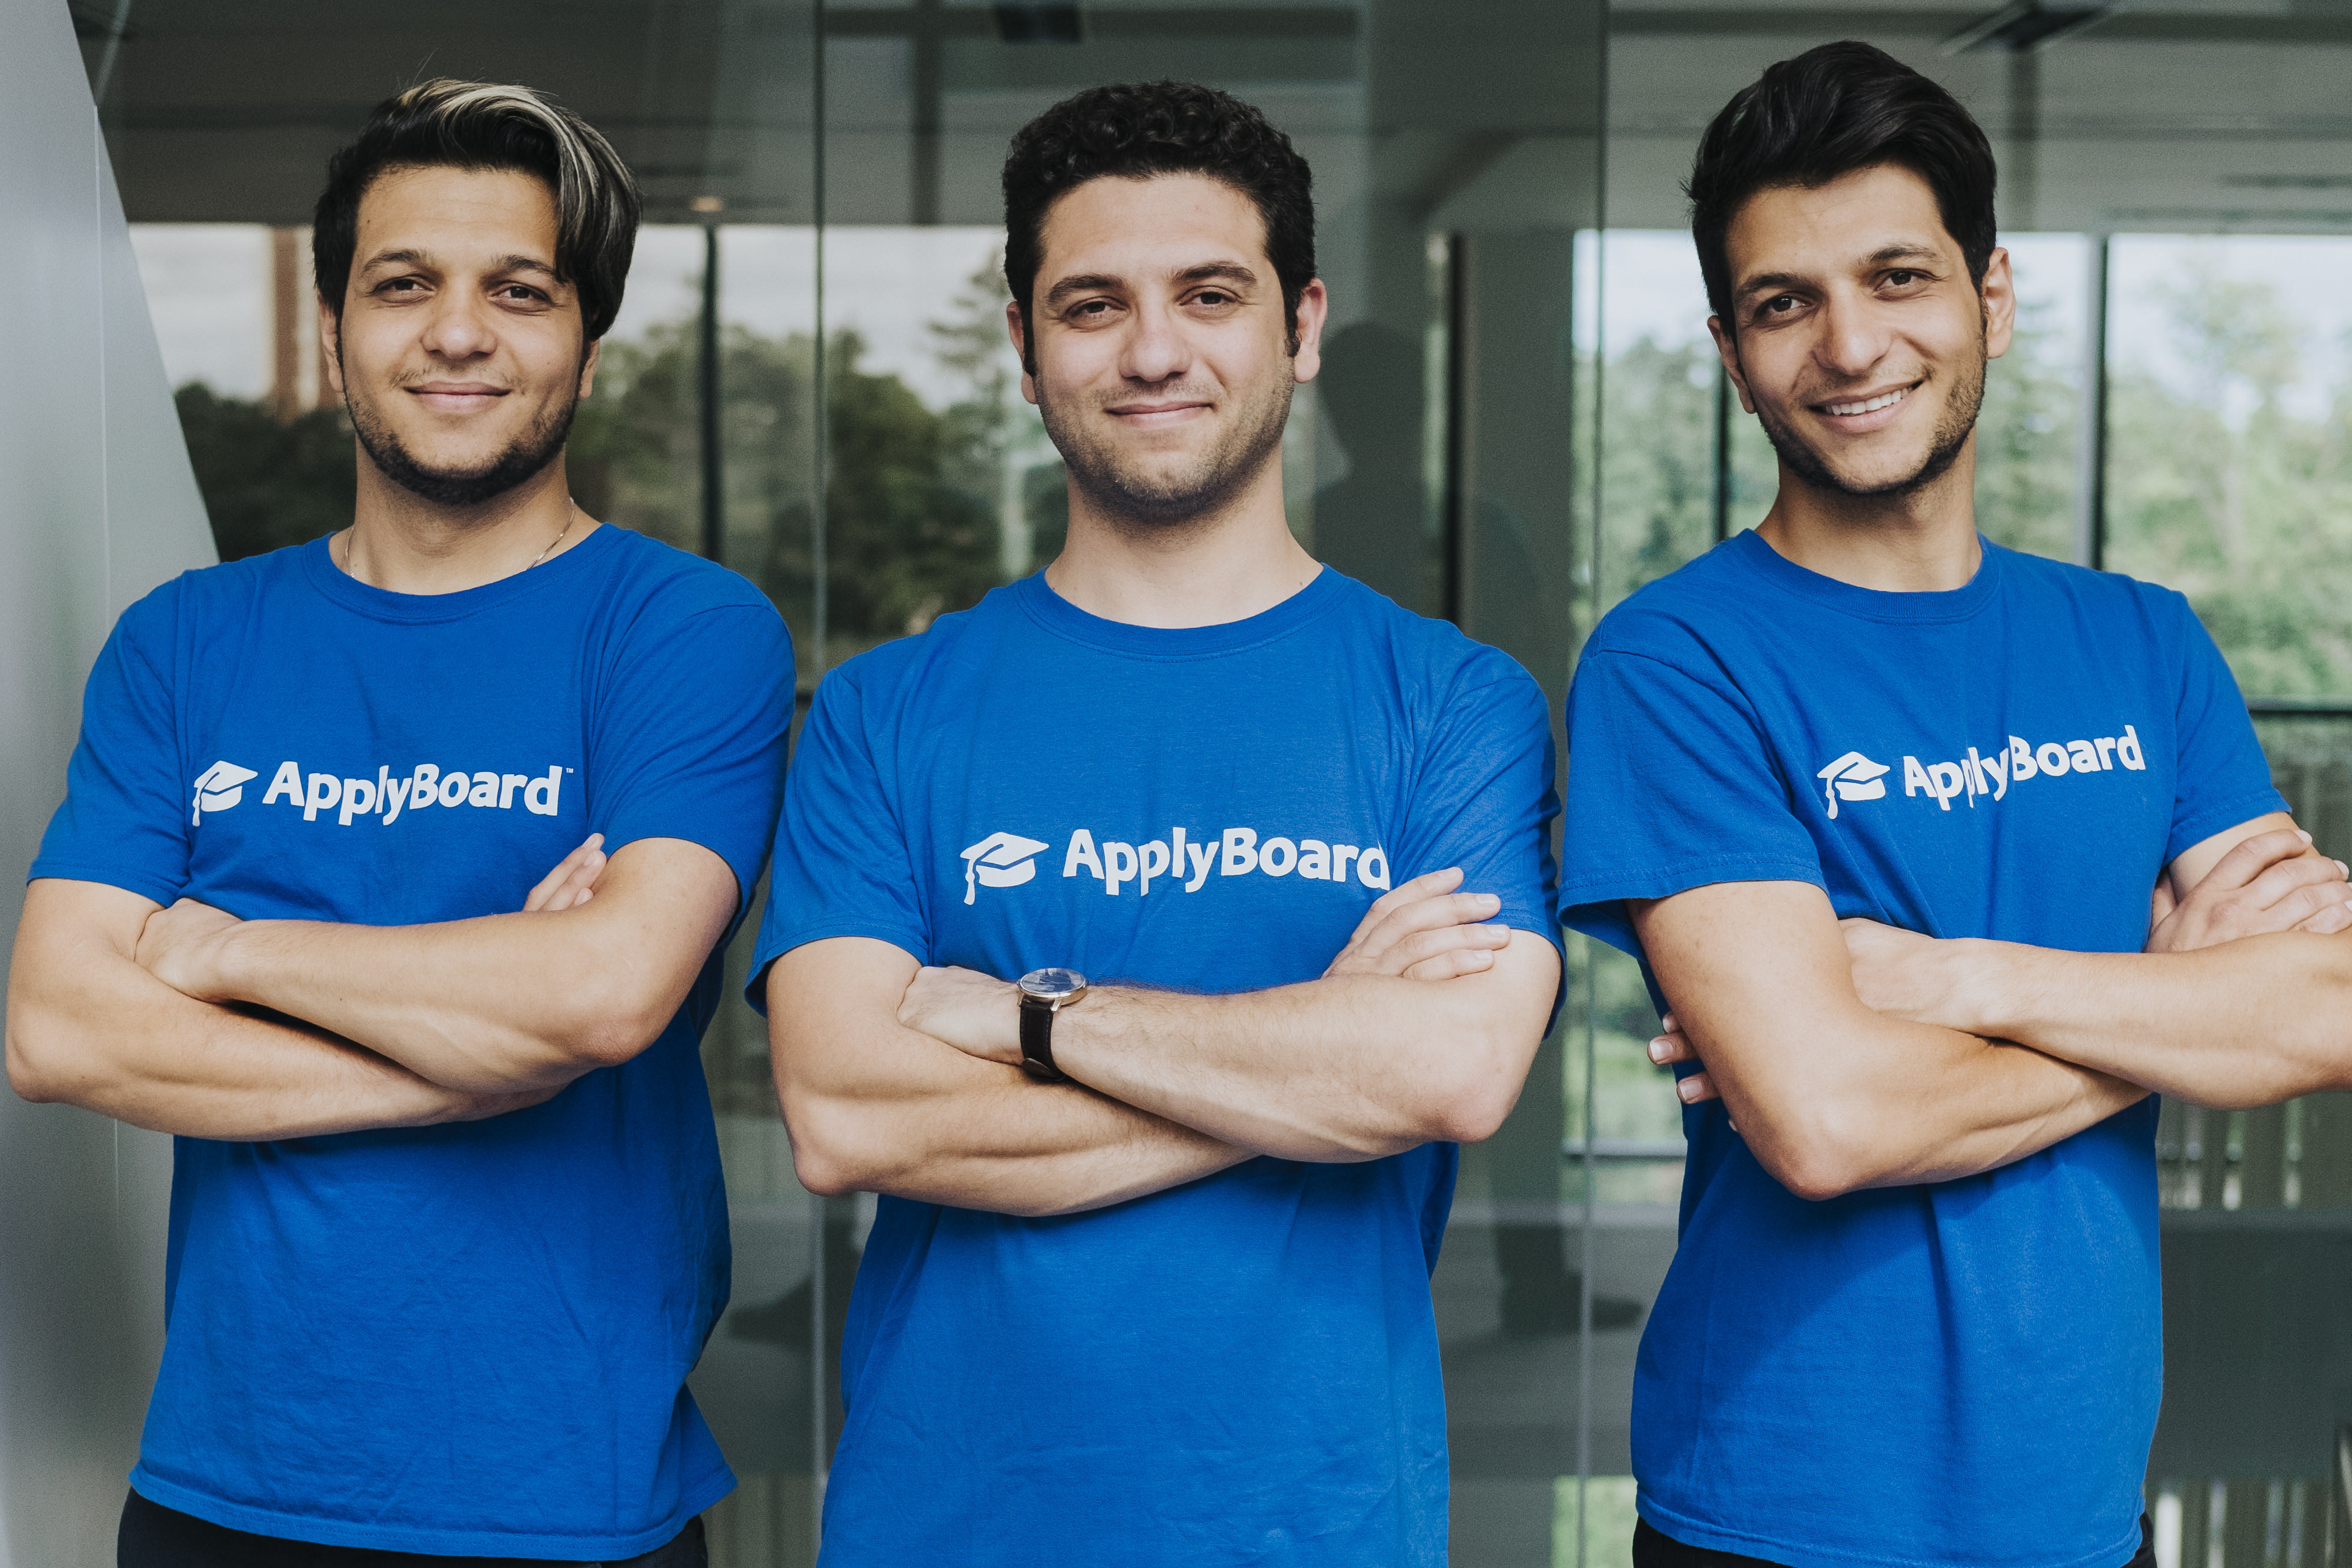 ApplyBoard Raises C$100M in Series C Funding Round | Business Wire